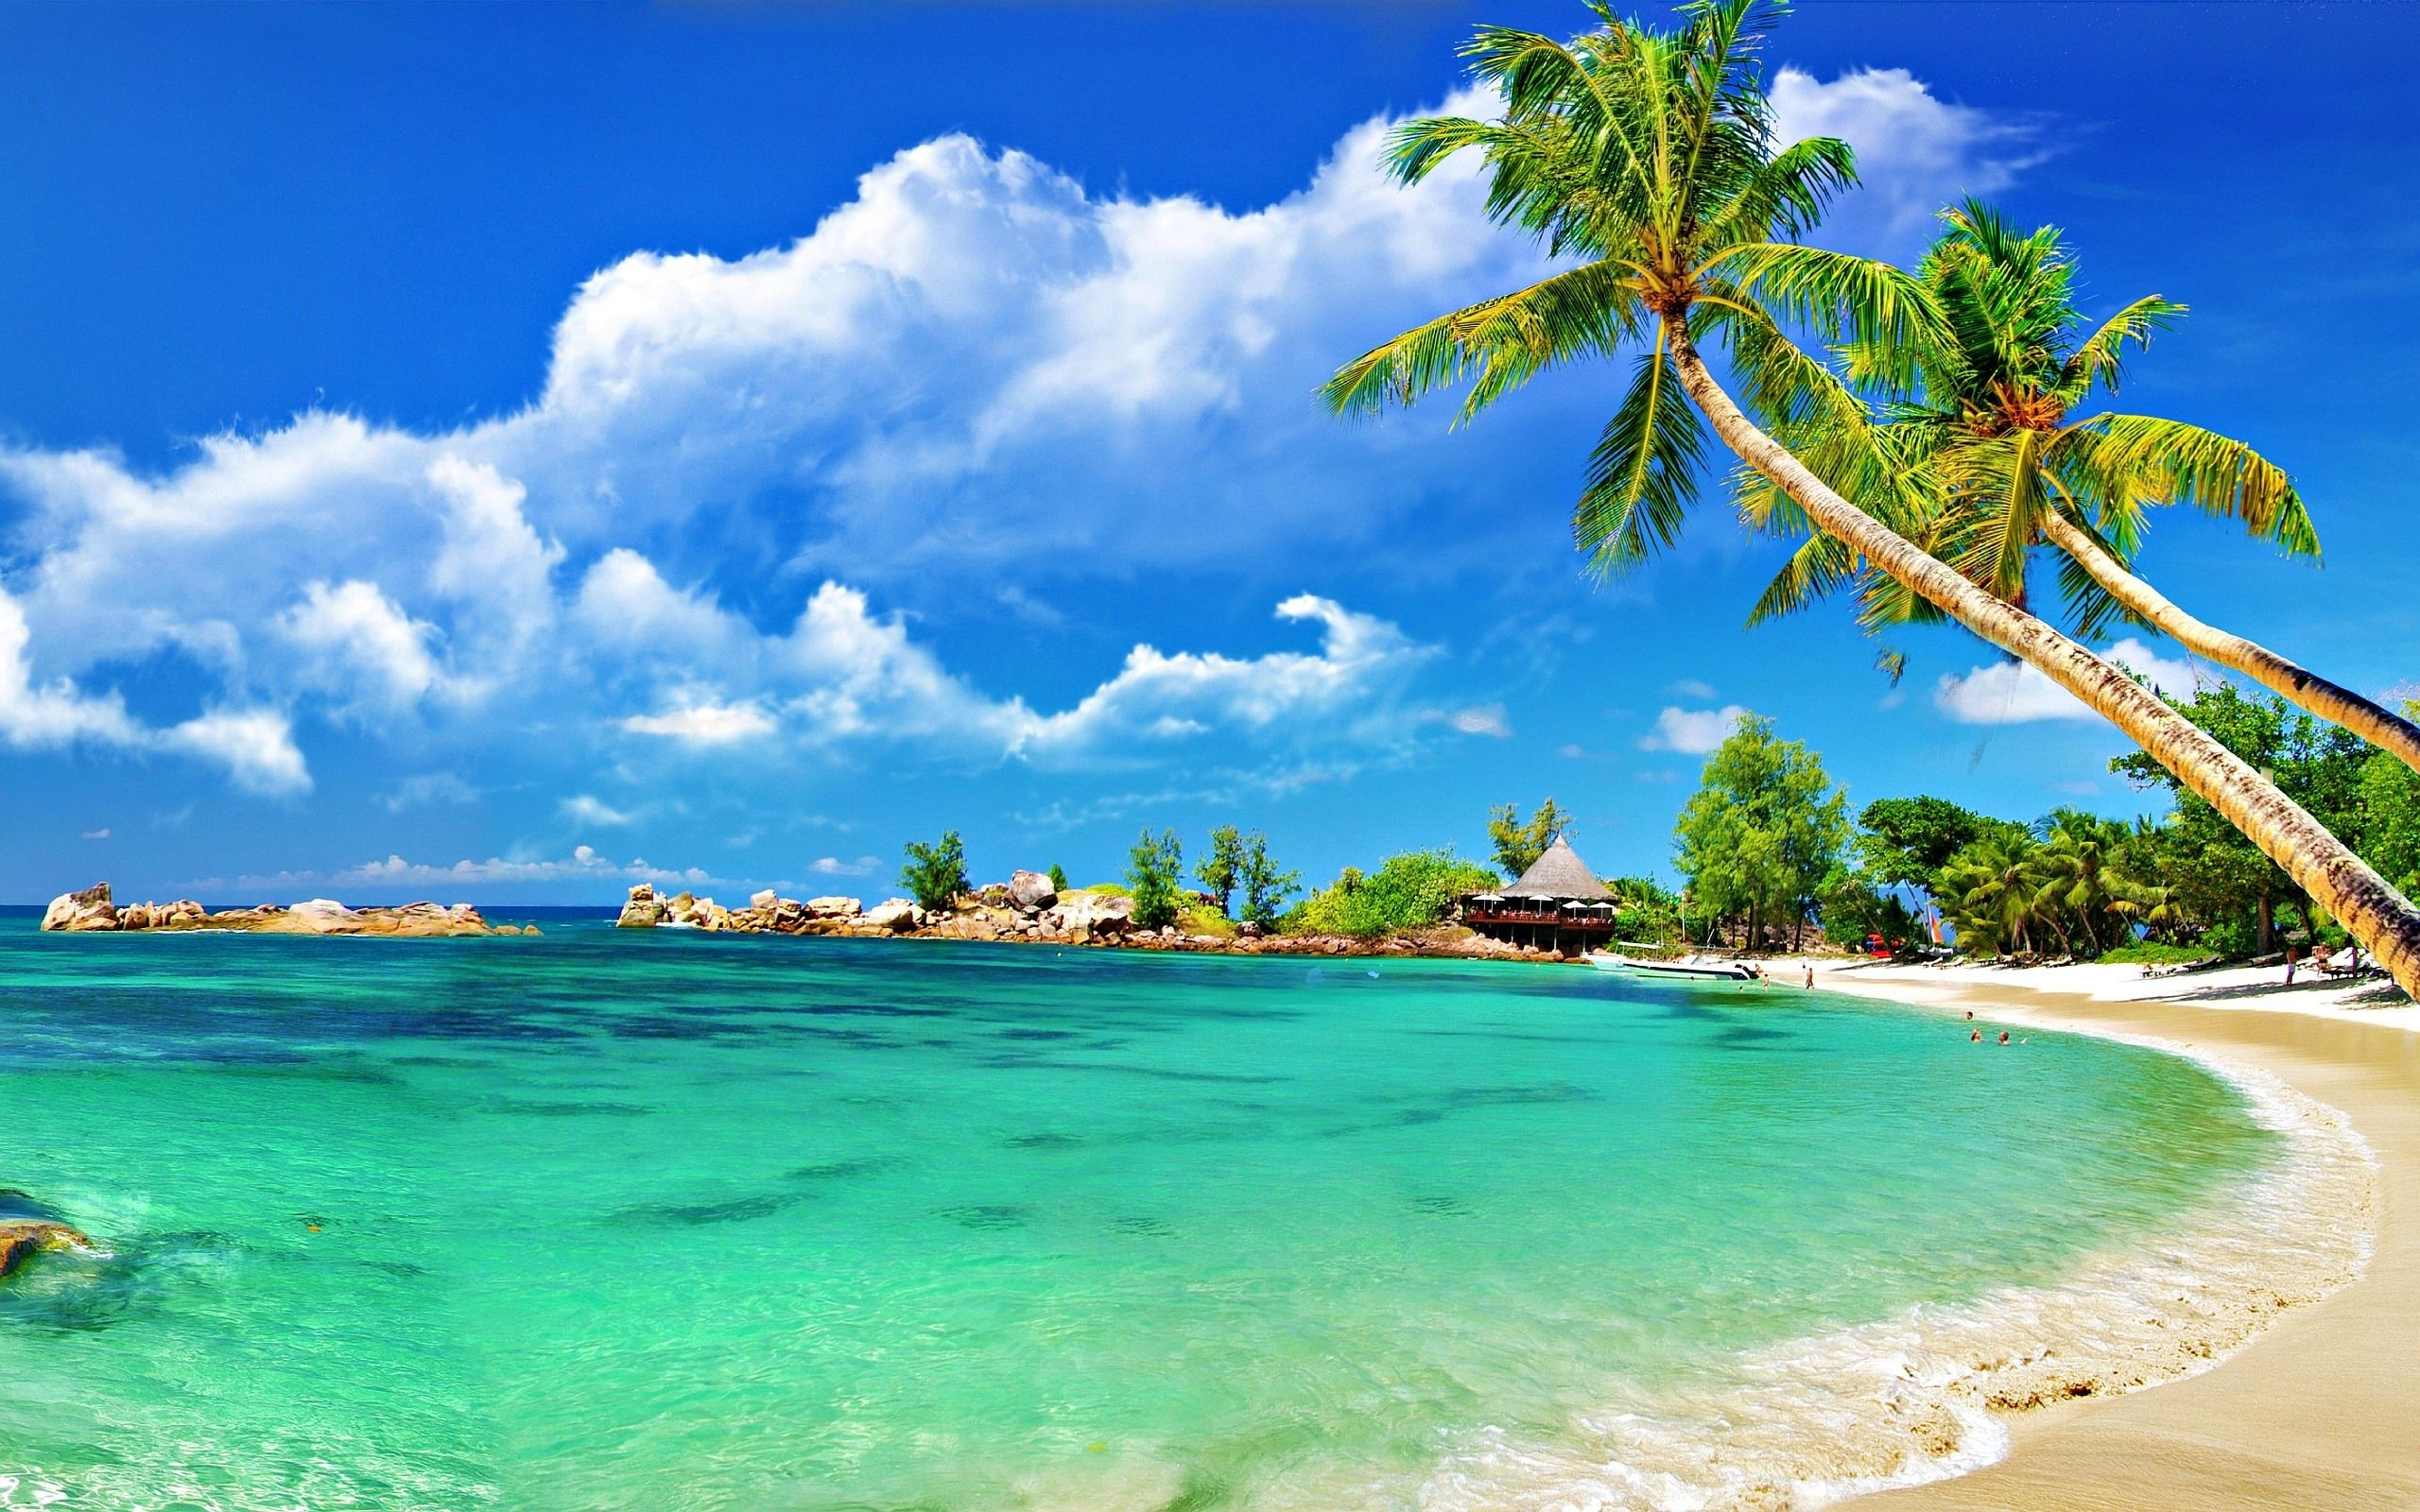 2560x1600 caribbean beach desktop wallpaper - Beach is the best place for enjoyment  It is a place